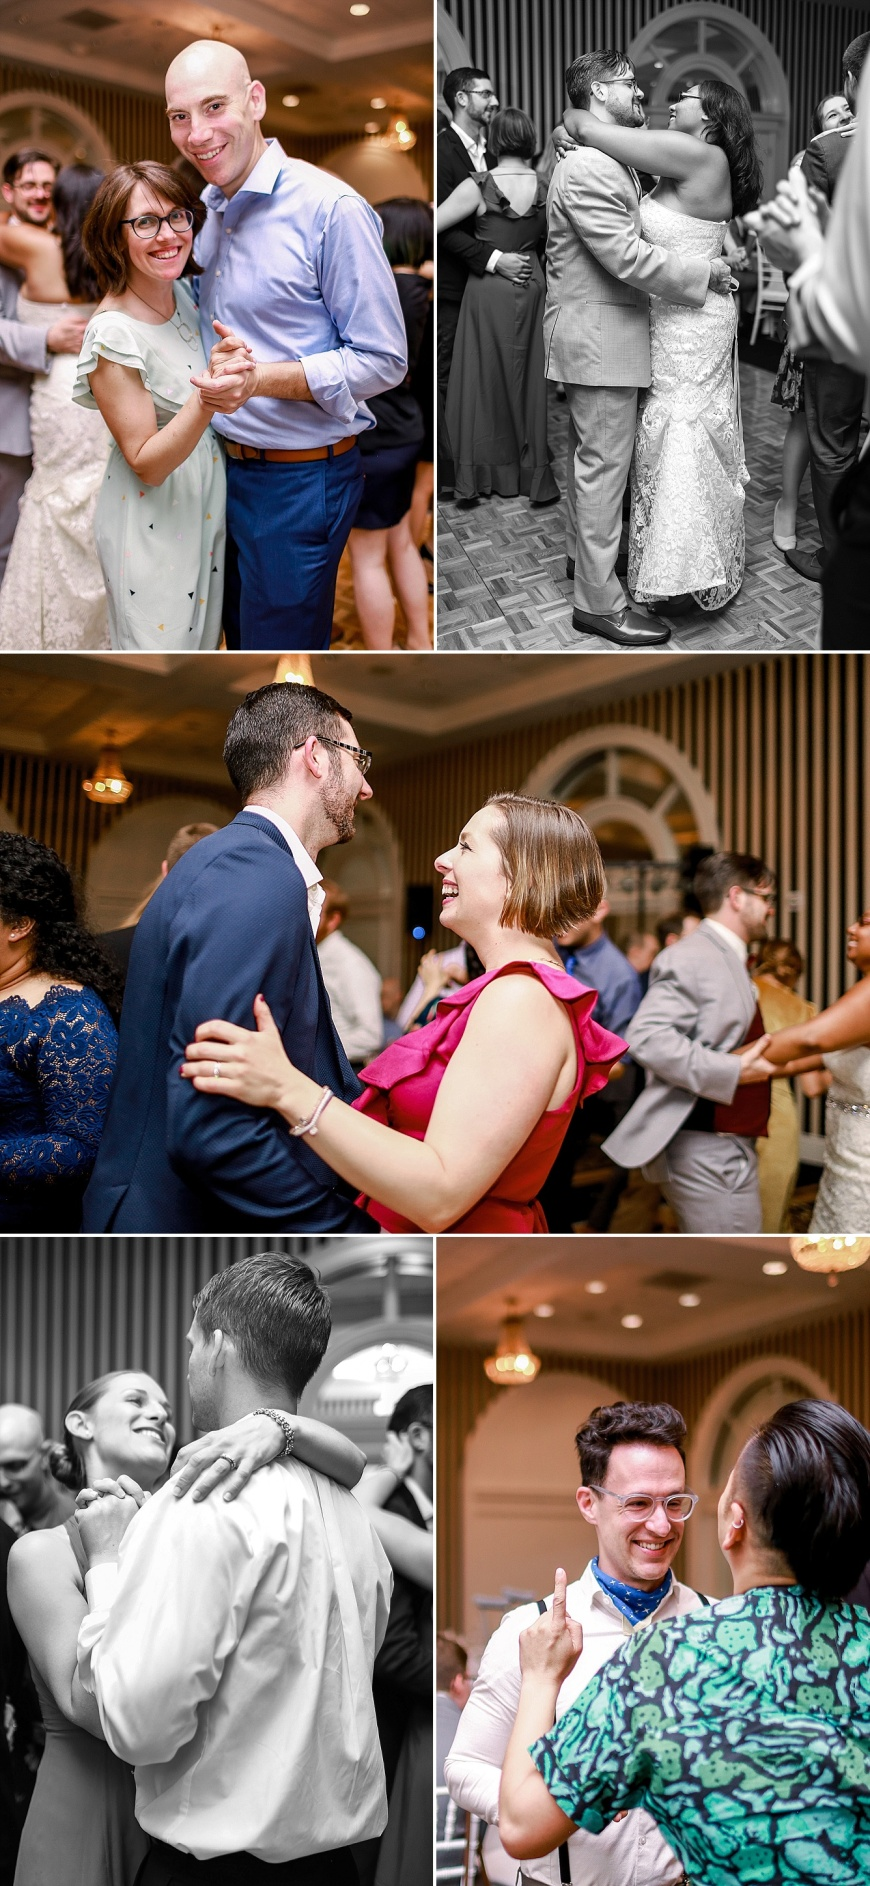 Hotel-Shattuck-Downtown-Berkeley-Wedding-Photographer_1086.jpg